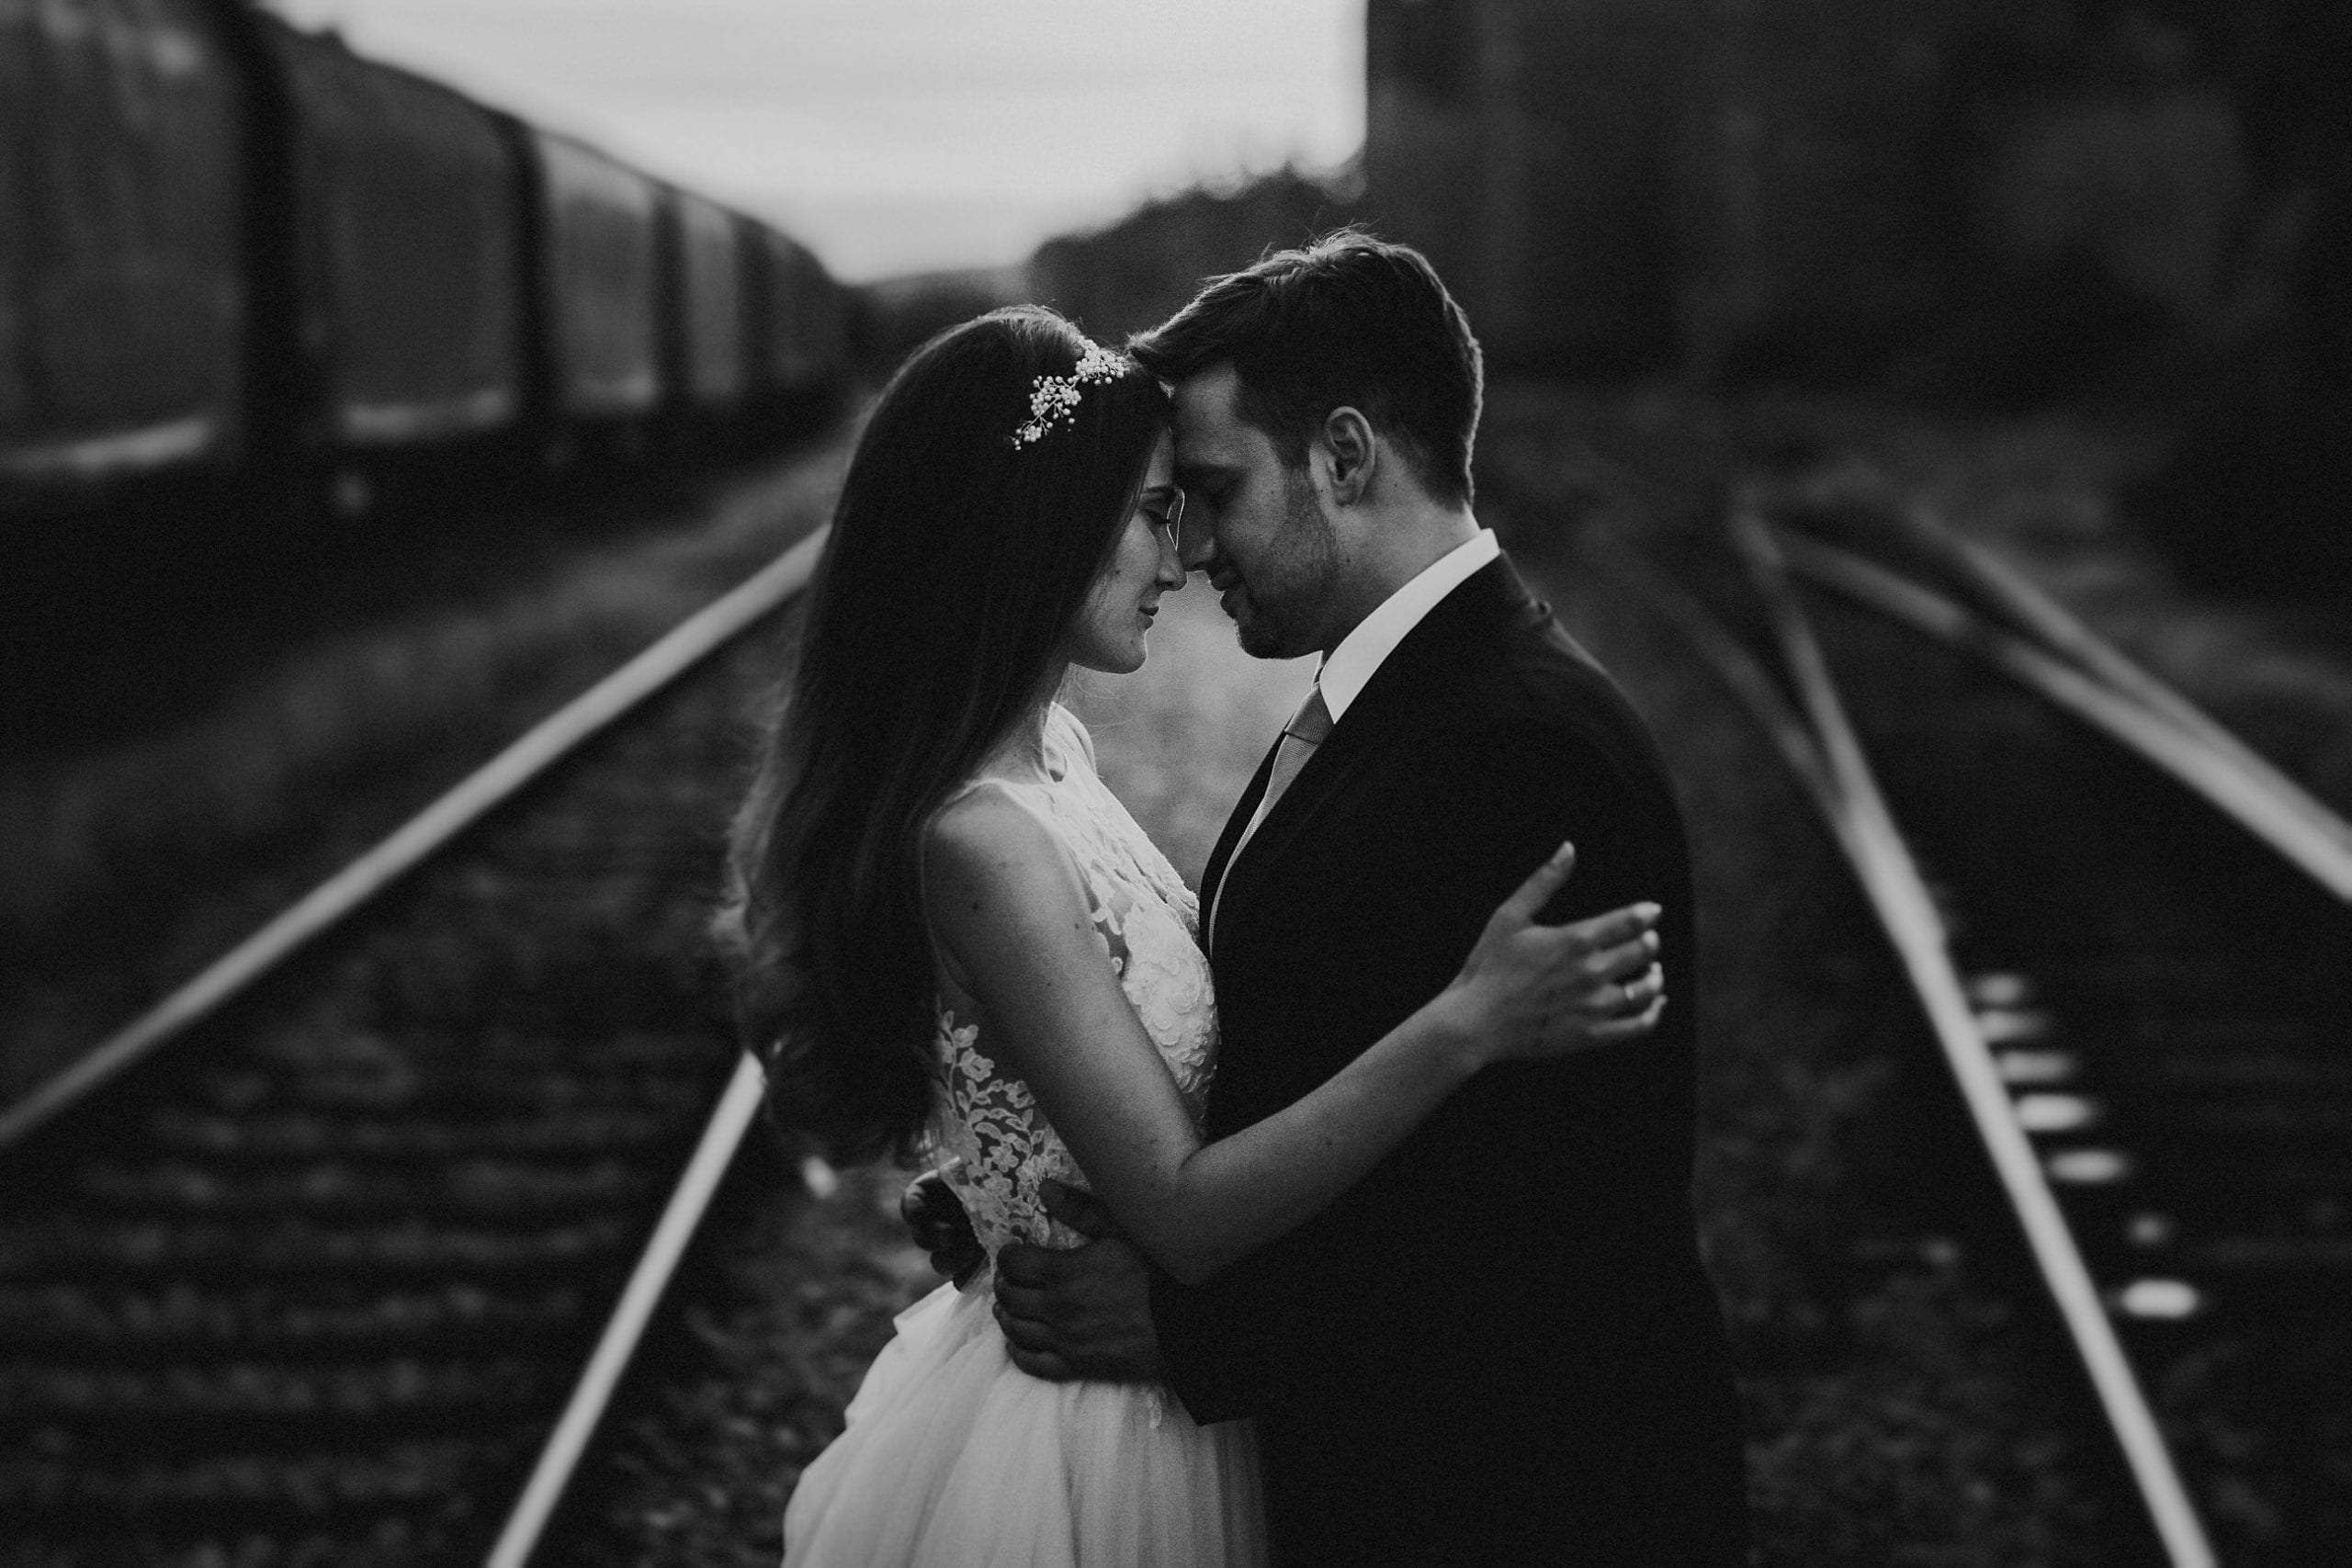 A couple standing on train tracks during an Elopement in Italy.